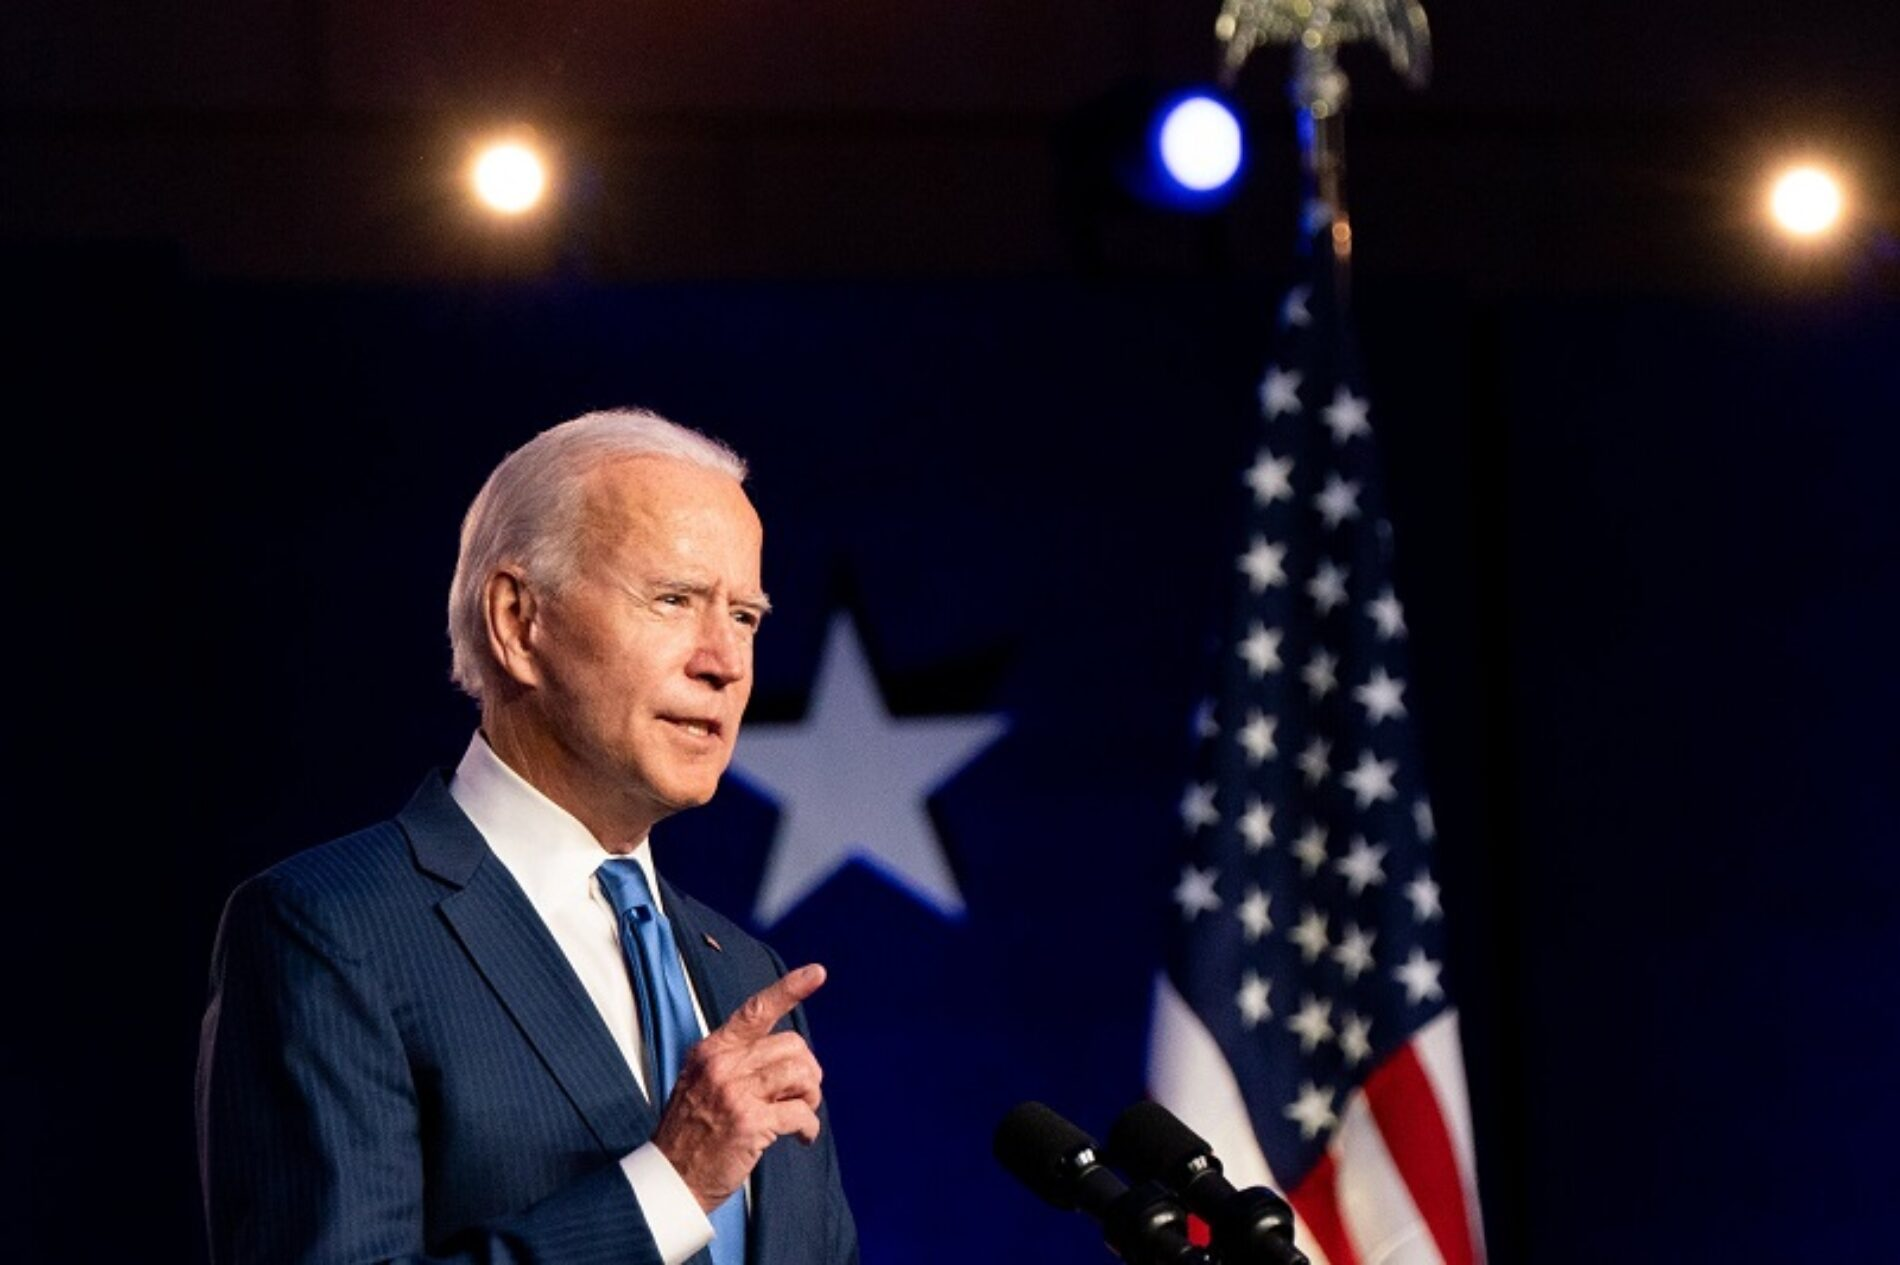 Joe Biden to Become the 46th President of the United States of America